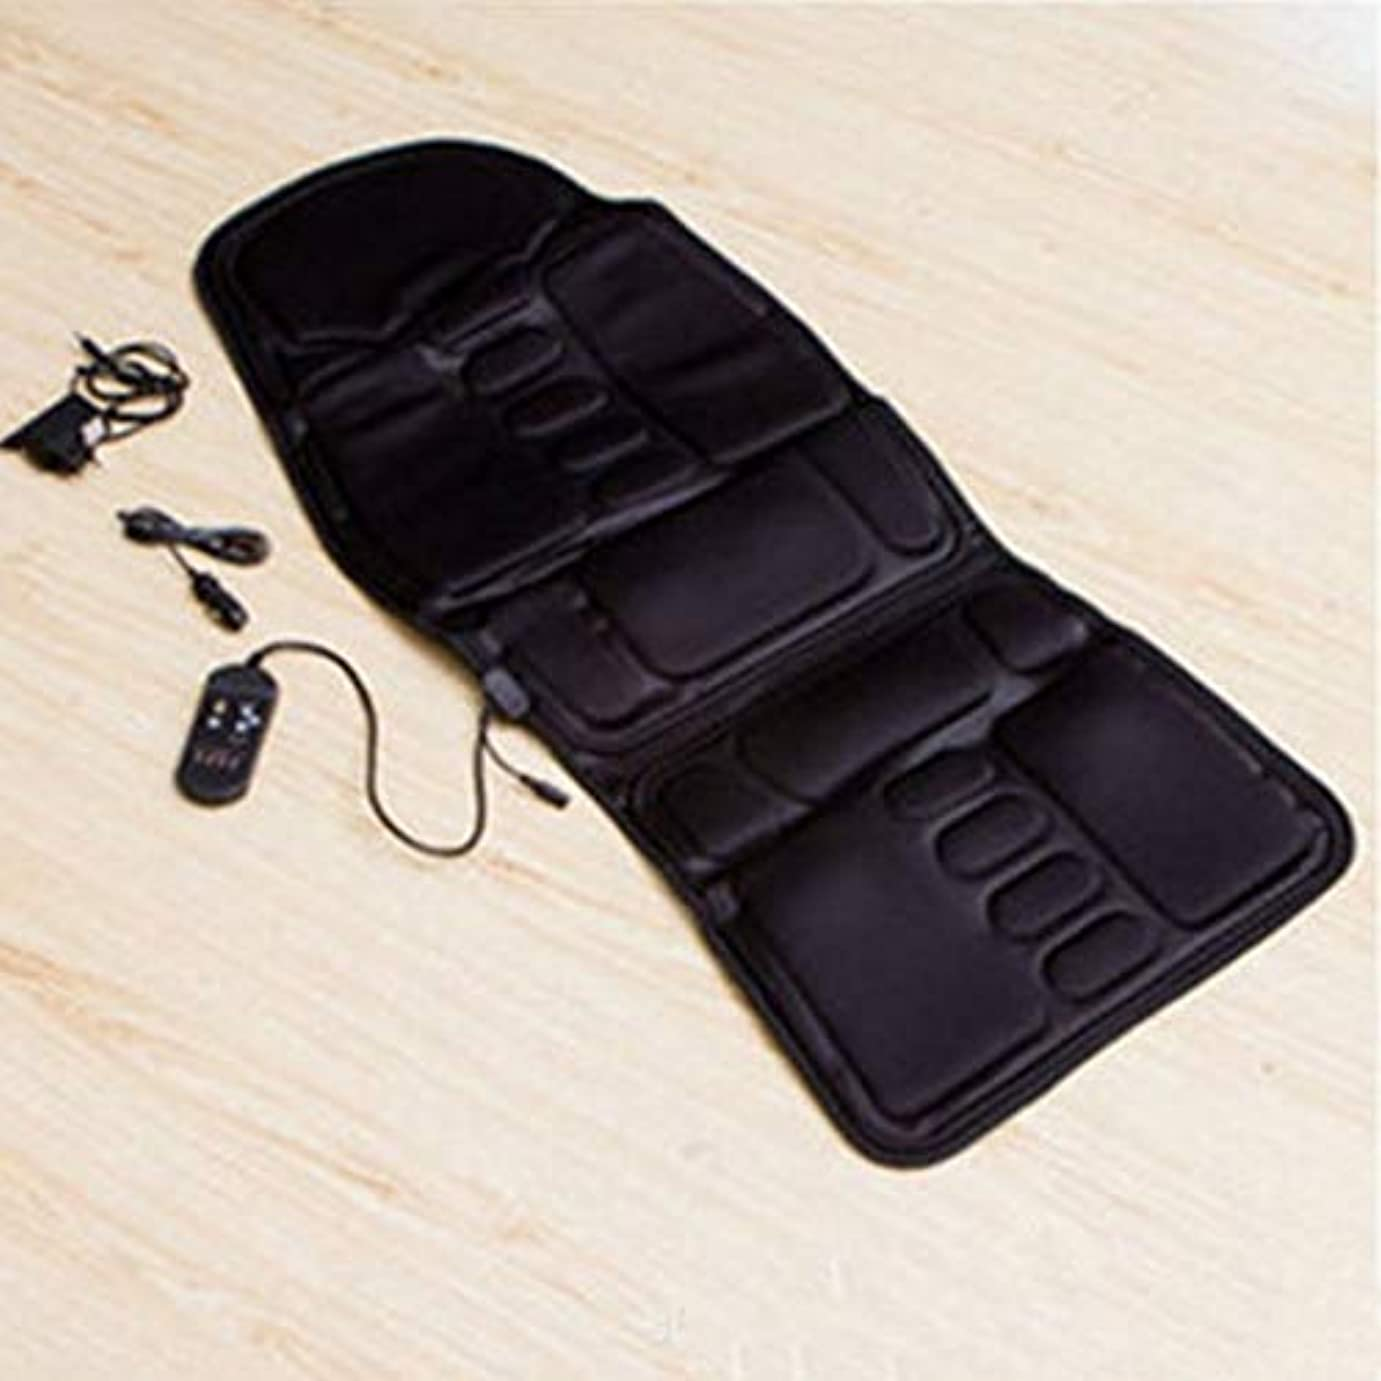 ノイズリルエロチックCar Chair Home Seat Heat Cushion Back Neck Waist Body Electric Multifunctional Chair Massage Pad Back Massager